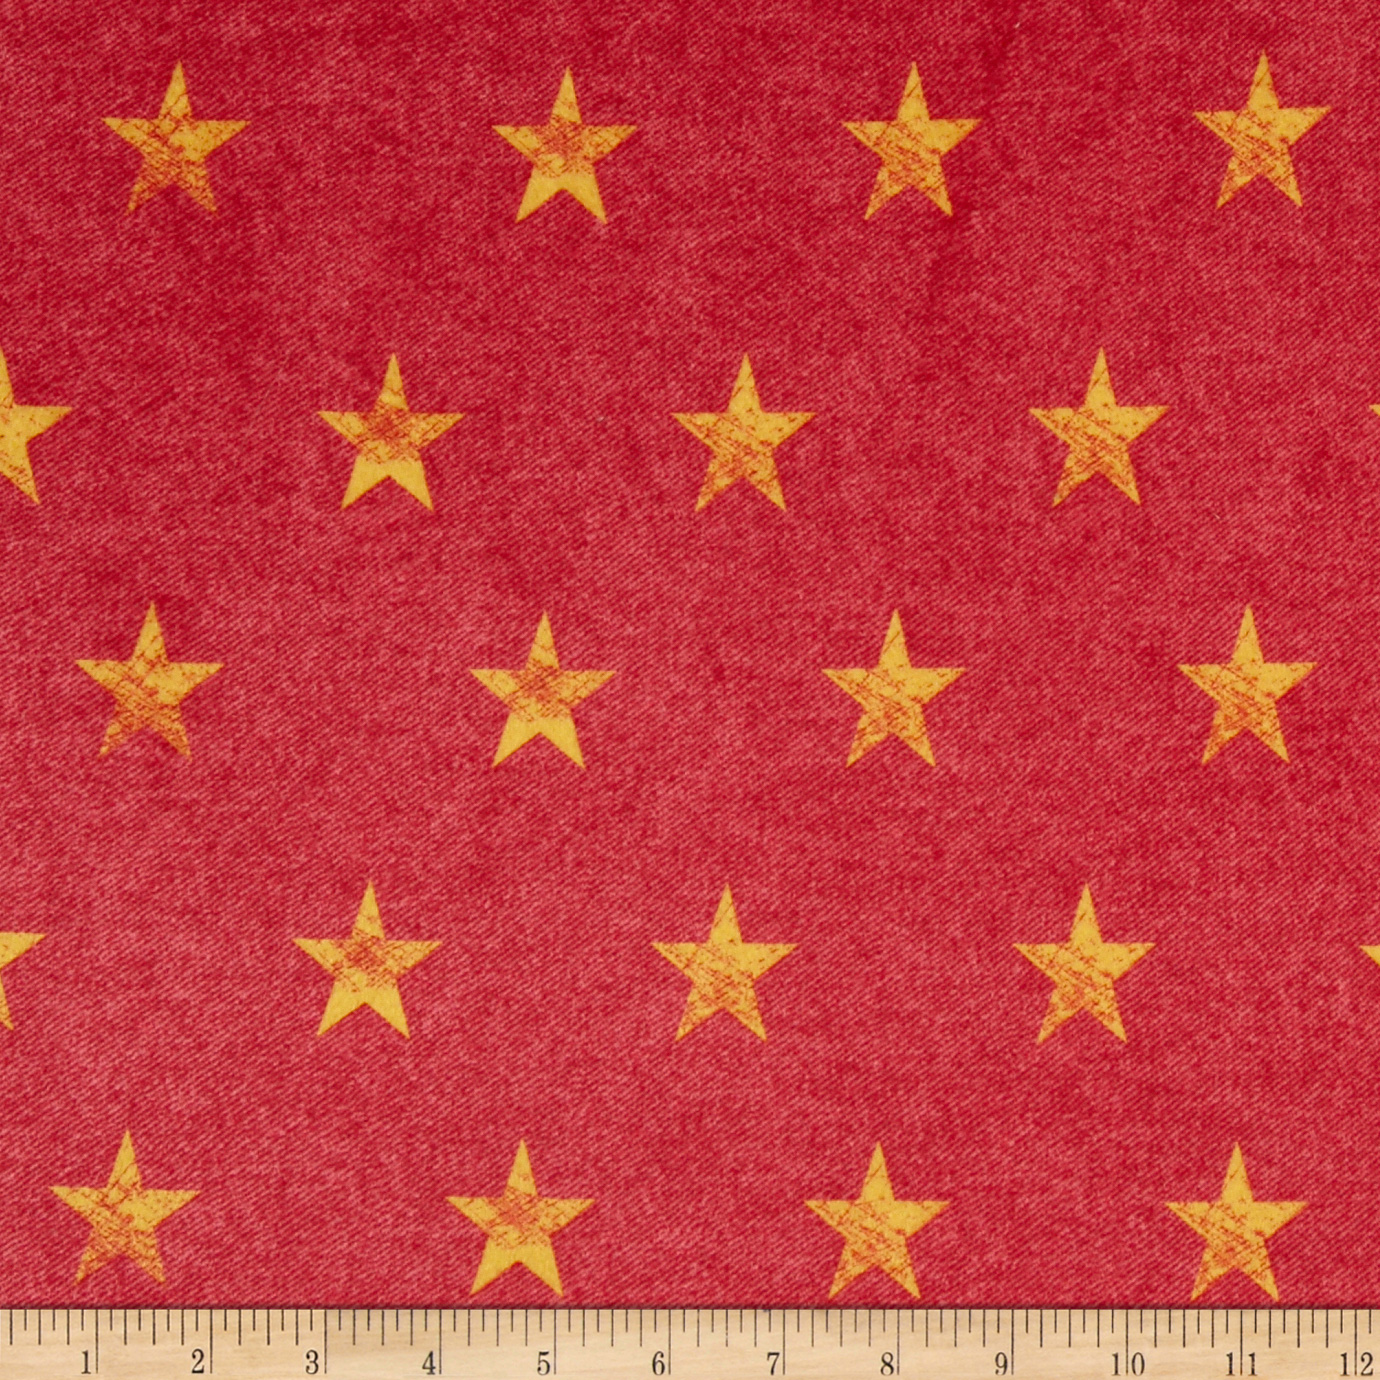 Minky Stars Red Denim/Yellow Fabric